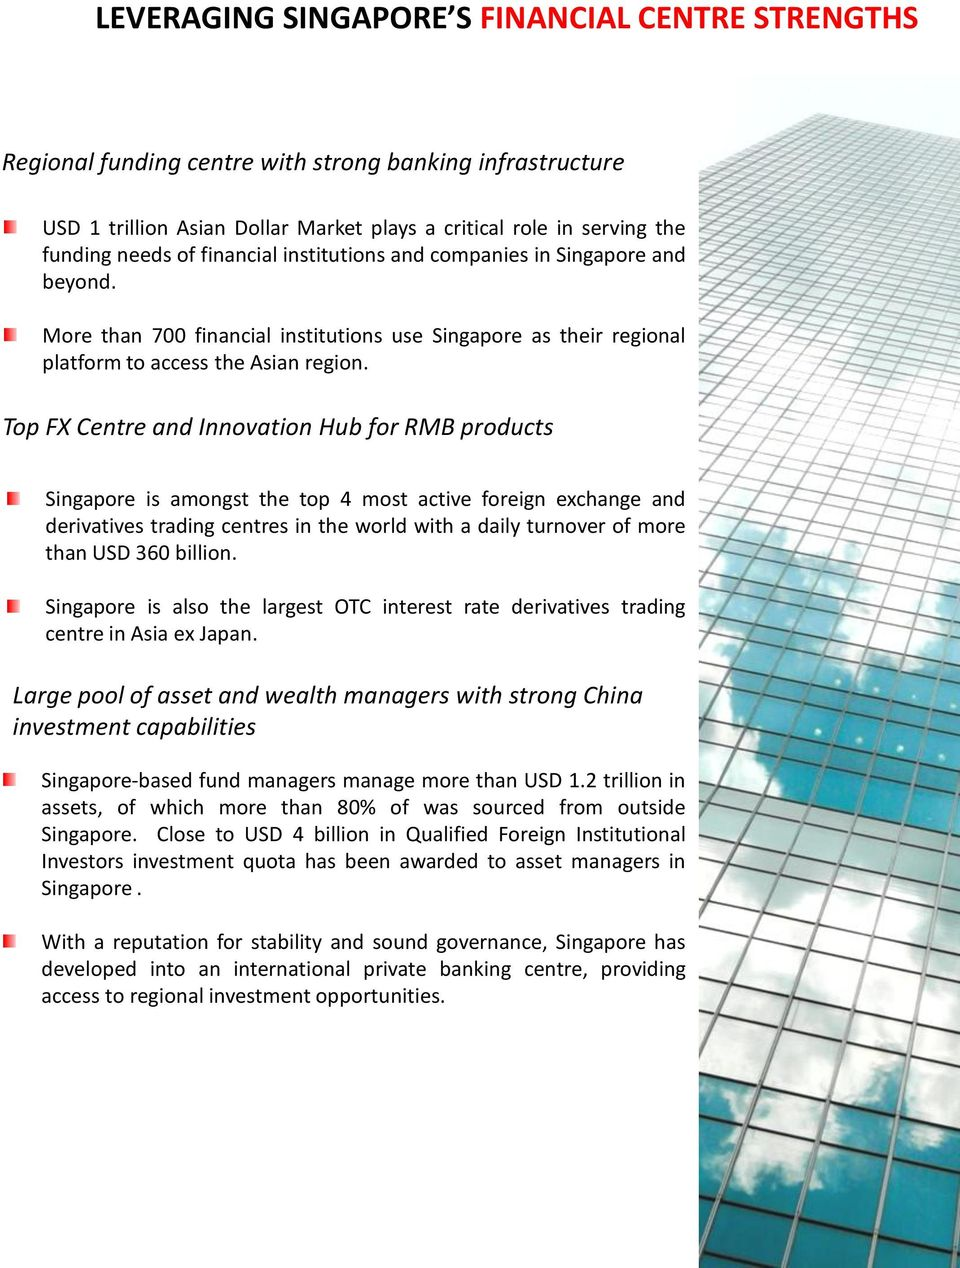 Top FX Centre and Innovation Hub for RMB products Singapore is amongst the top 4 most active foreign exchange and derivatives trading centres in the world with a daily turnover of more than USD 360